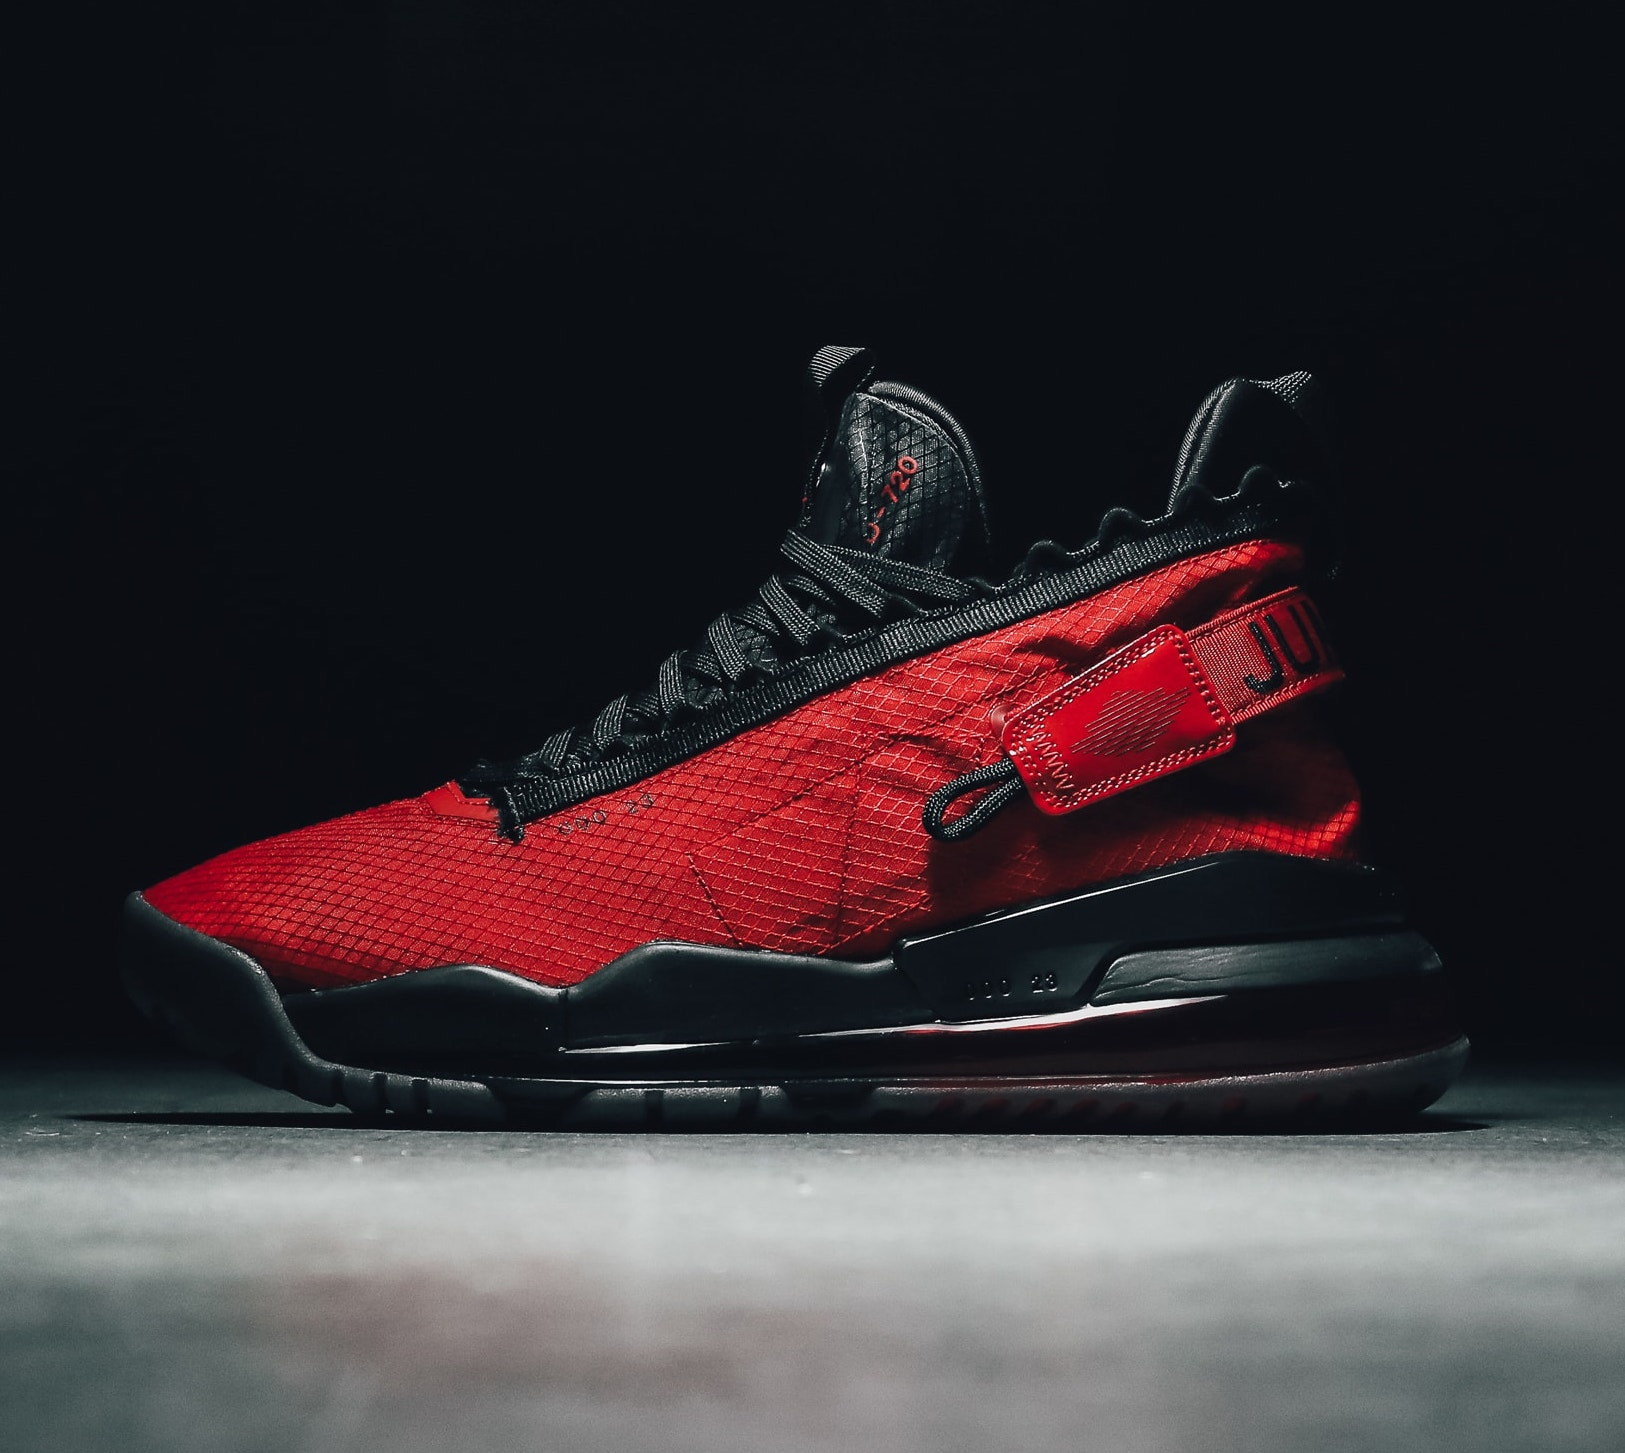 Now Available: Jordan Proto Max 720